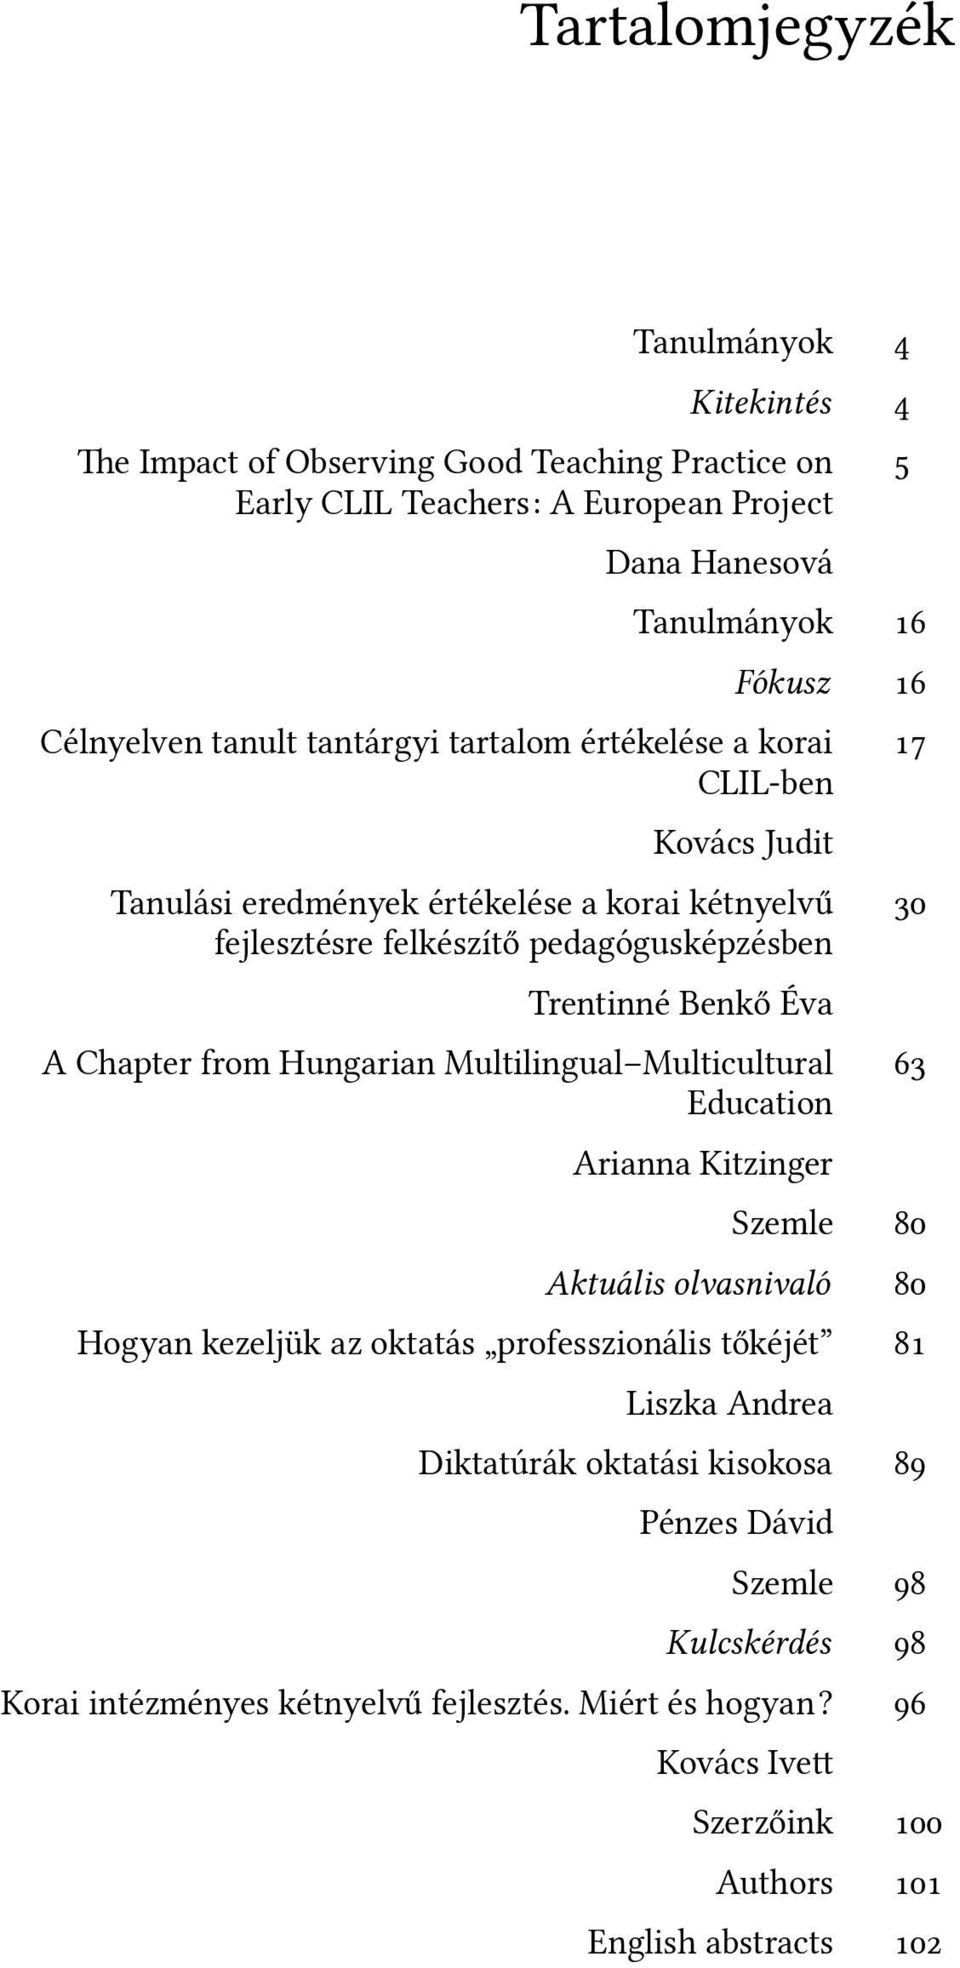 A Chapter from Hungarian Multilingual Multicultural Education 63 Arianna Kitzinger Szemle 80 Aktuális olvasnivaló 80 Hogyan kezeljük az oktatás professzionális tőkéjét 81 Liszka Andrea